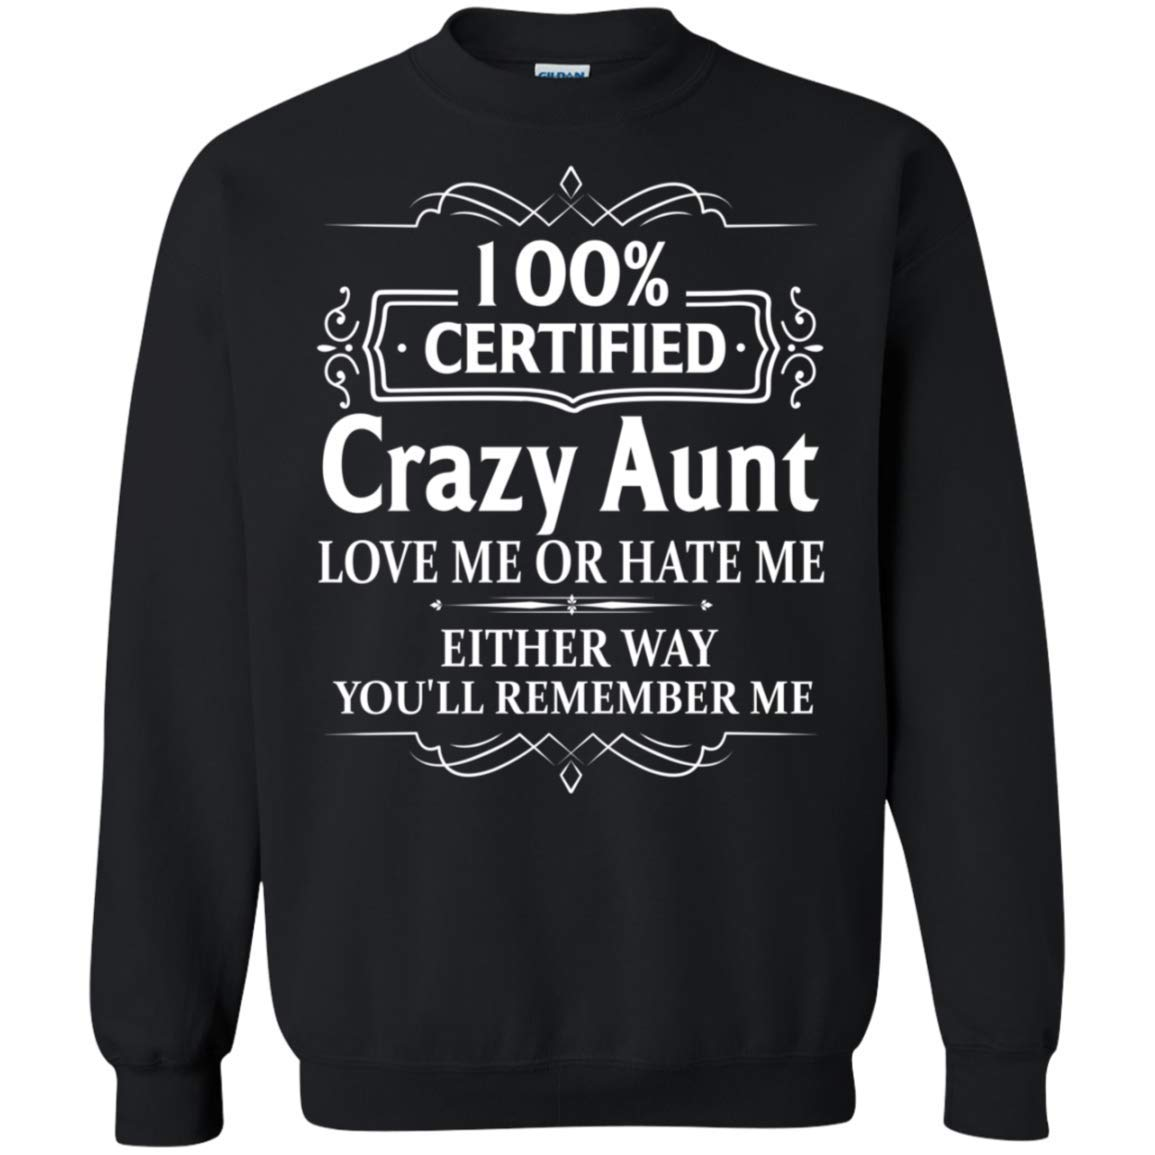 100/% Certified Crazy Aunt Love Me Or Hate Me Either Way Youll Remember Me Crew Neck Pullover Sweatshirt